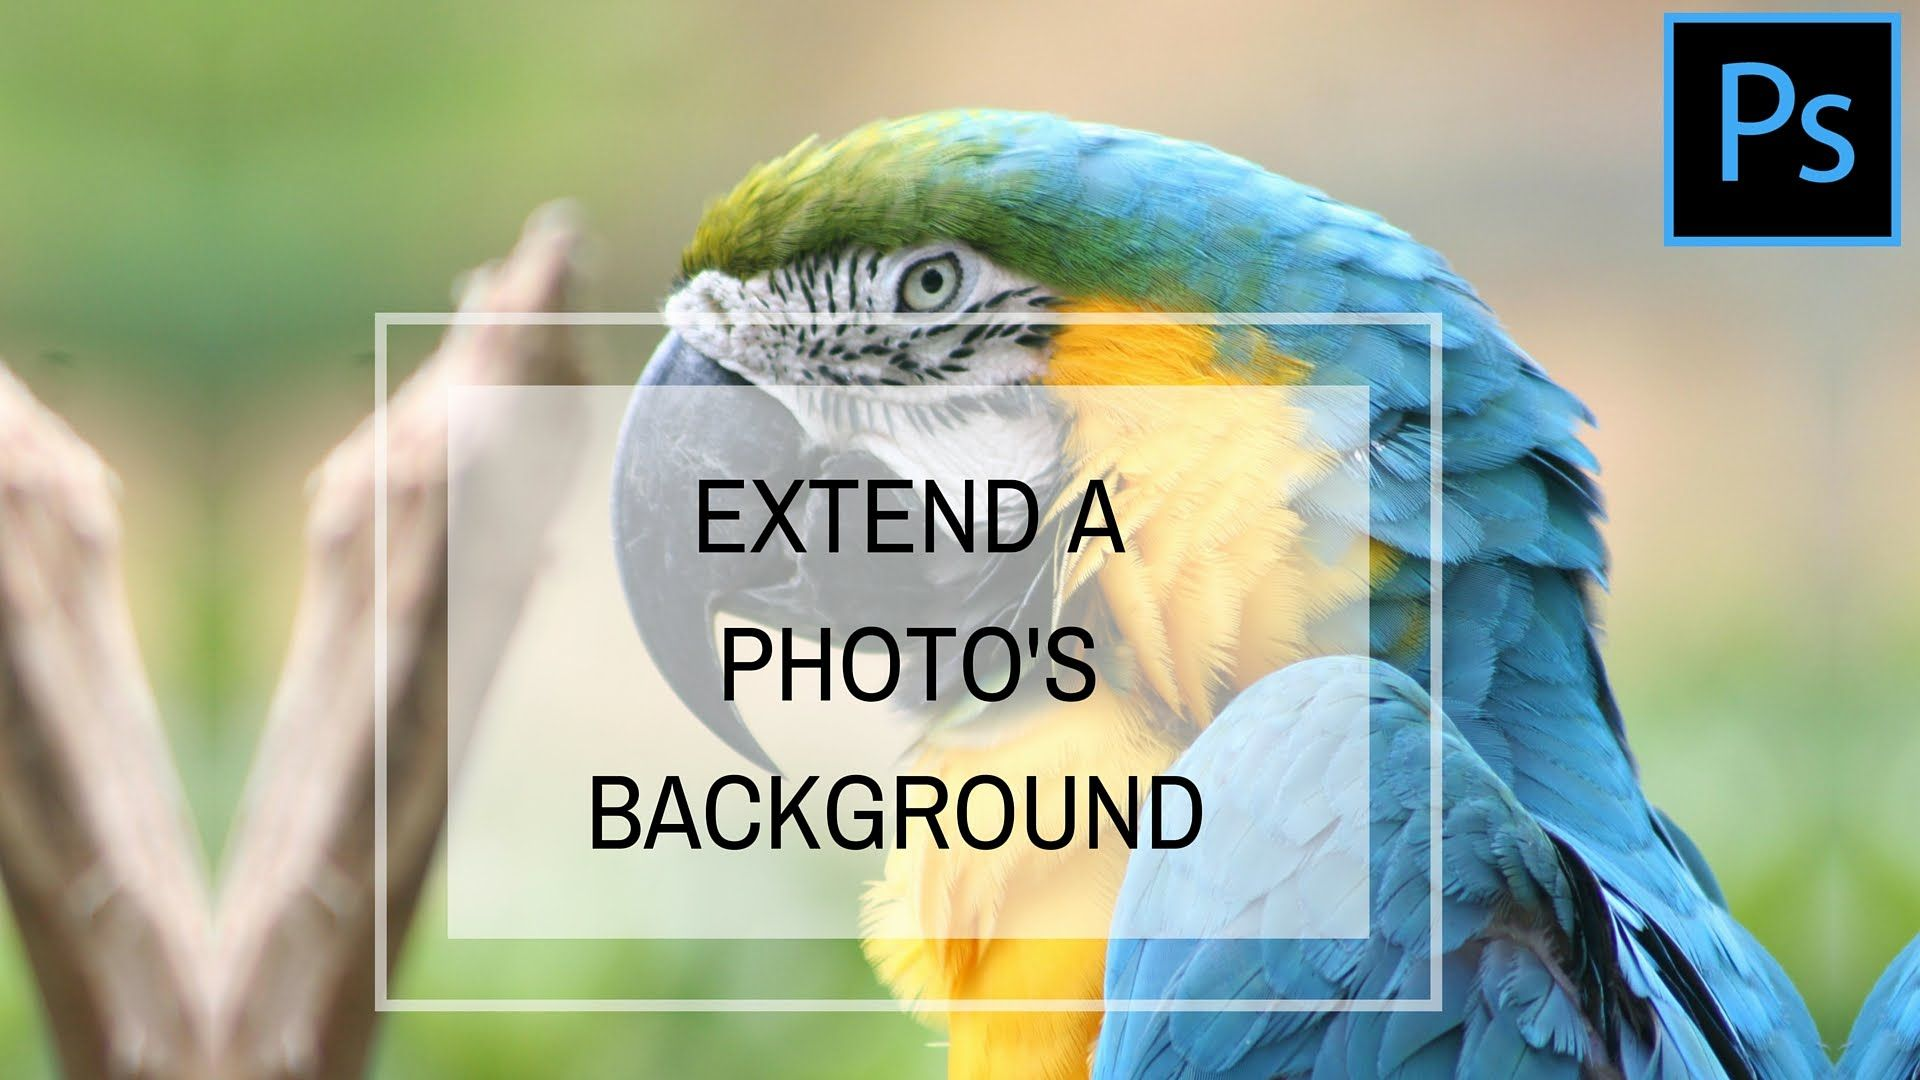 Extend an images background with images